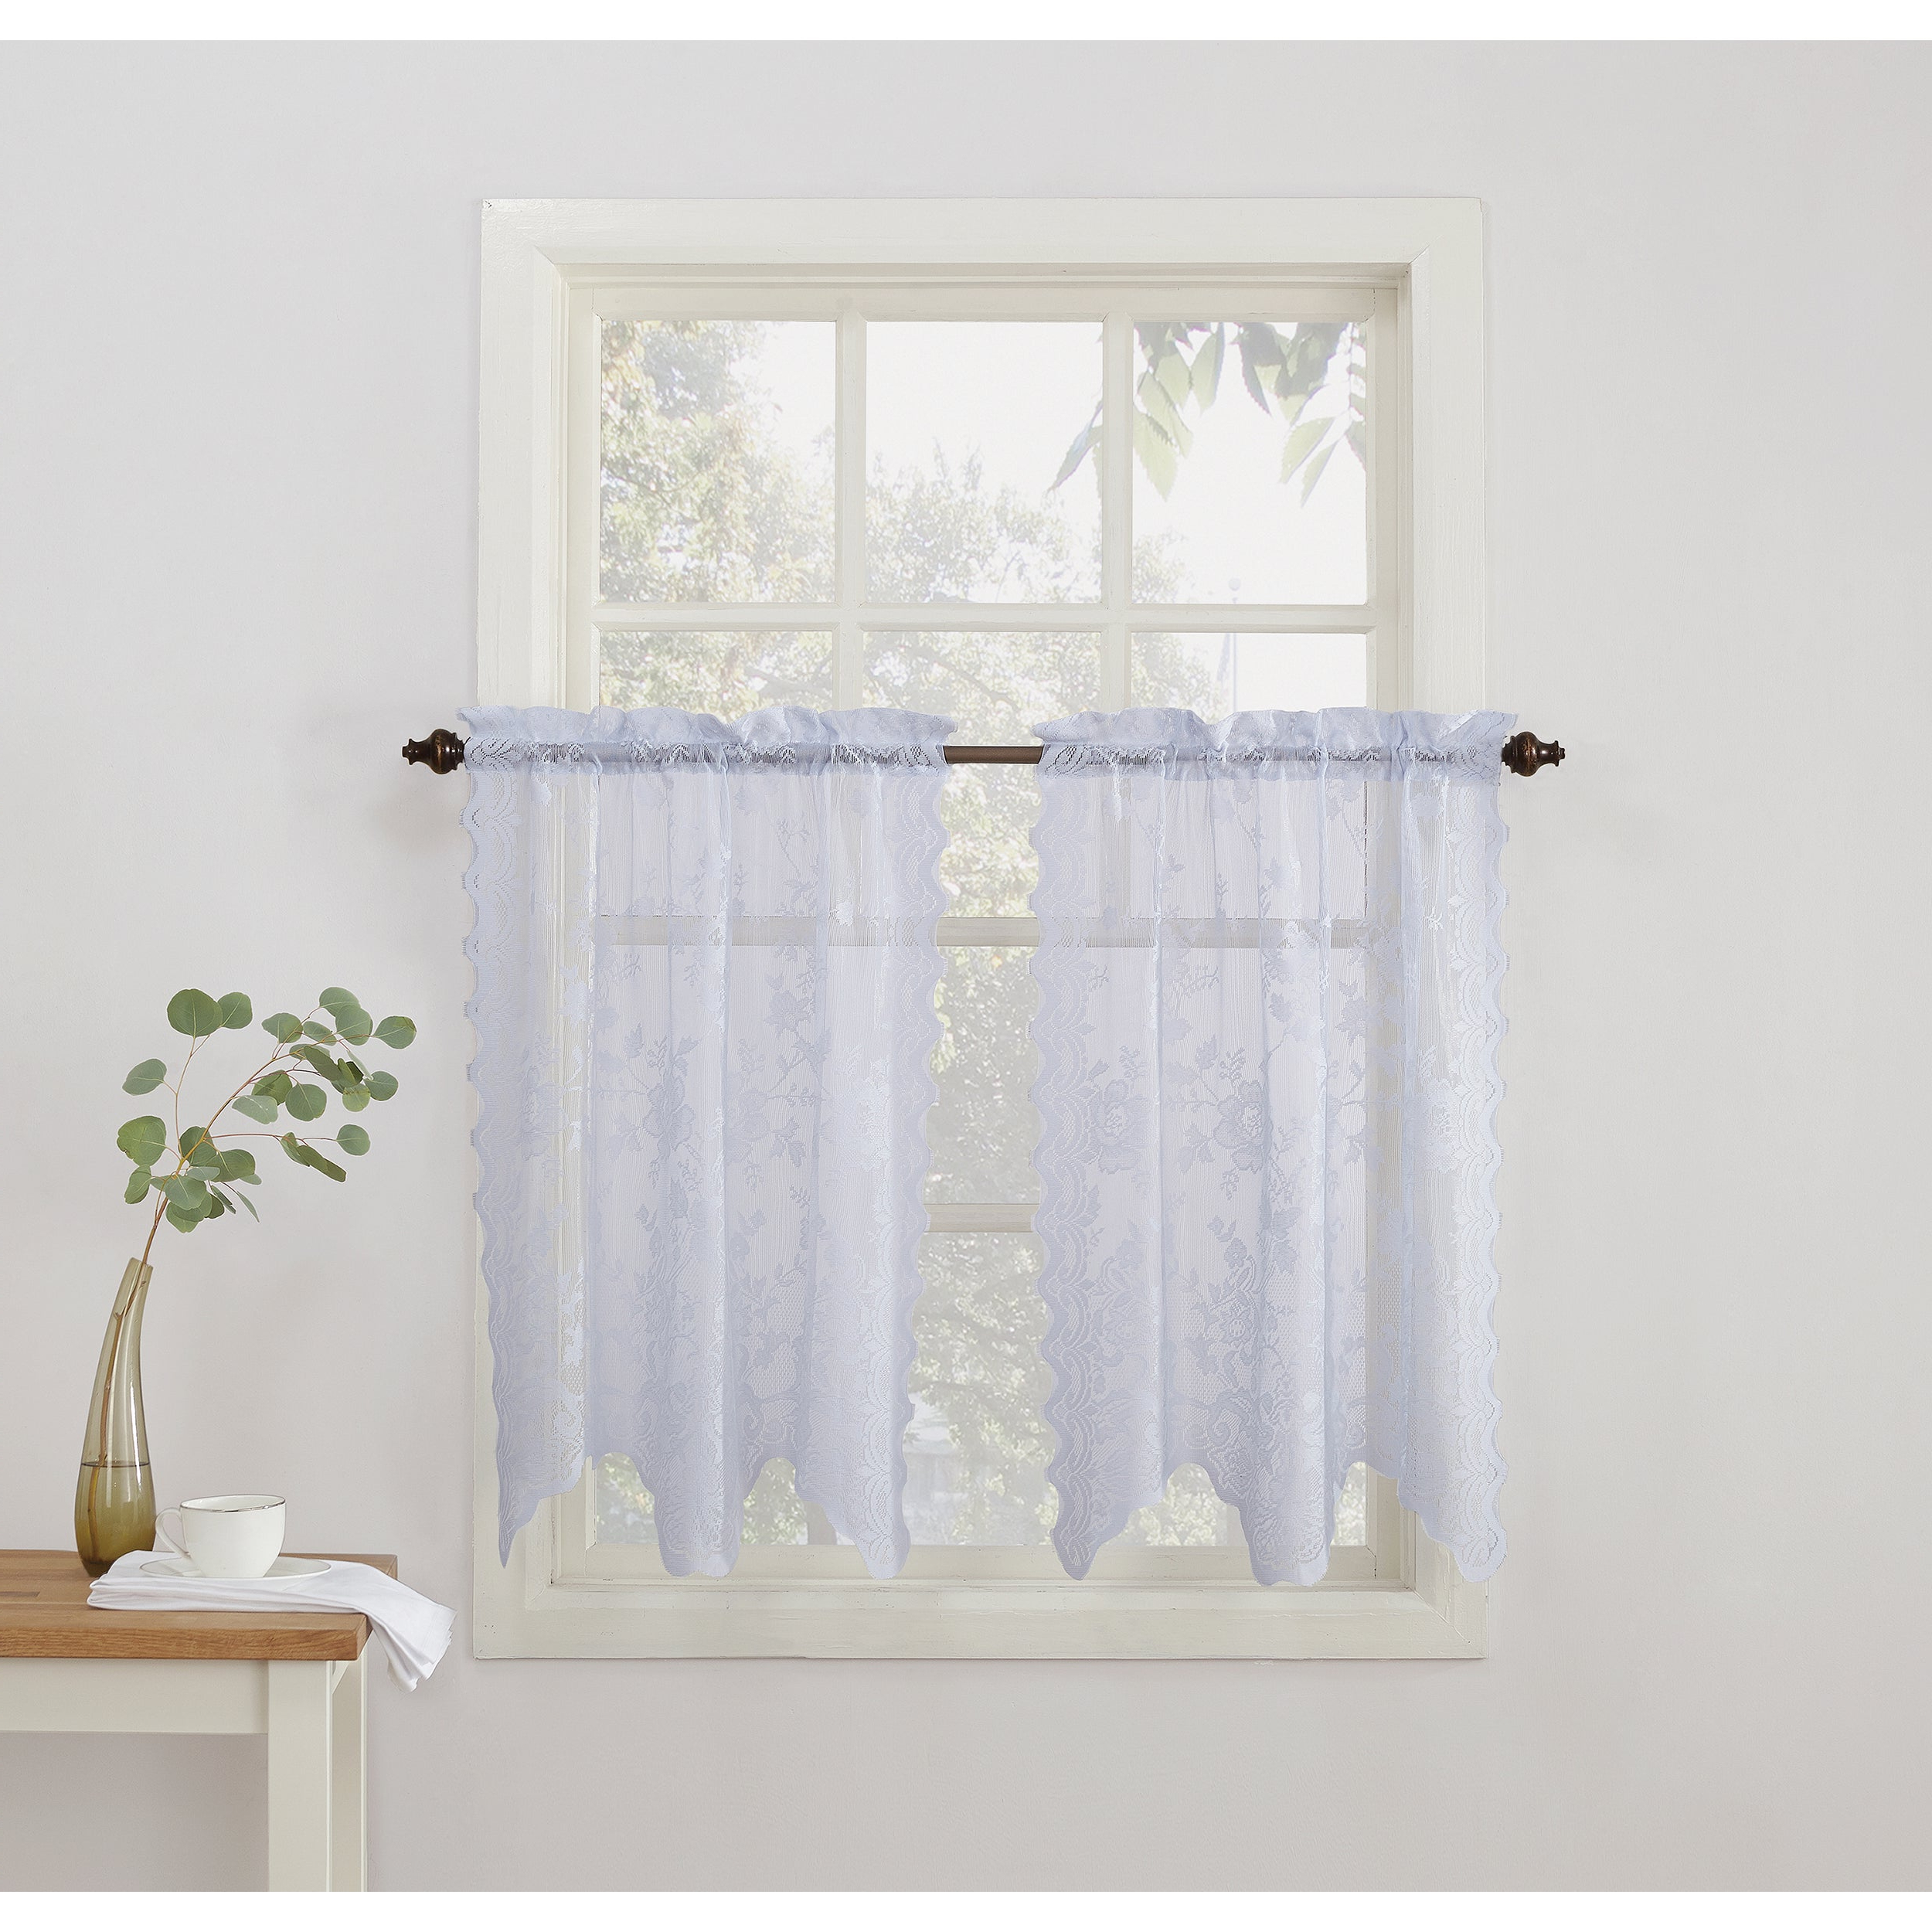 Famous White Knit Lace Bird Motif Window Curtain Tiers For No (View 18 of 20)